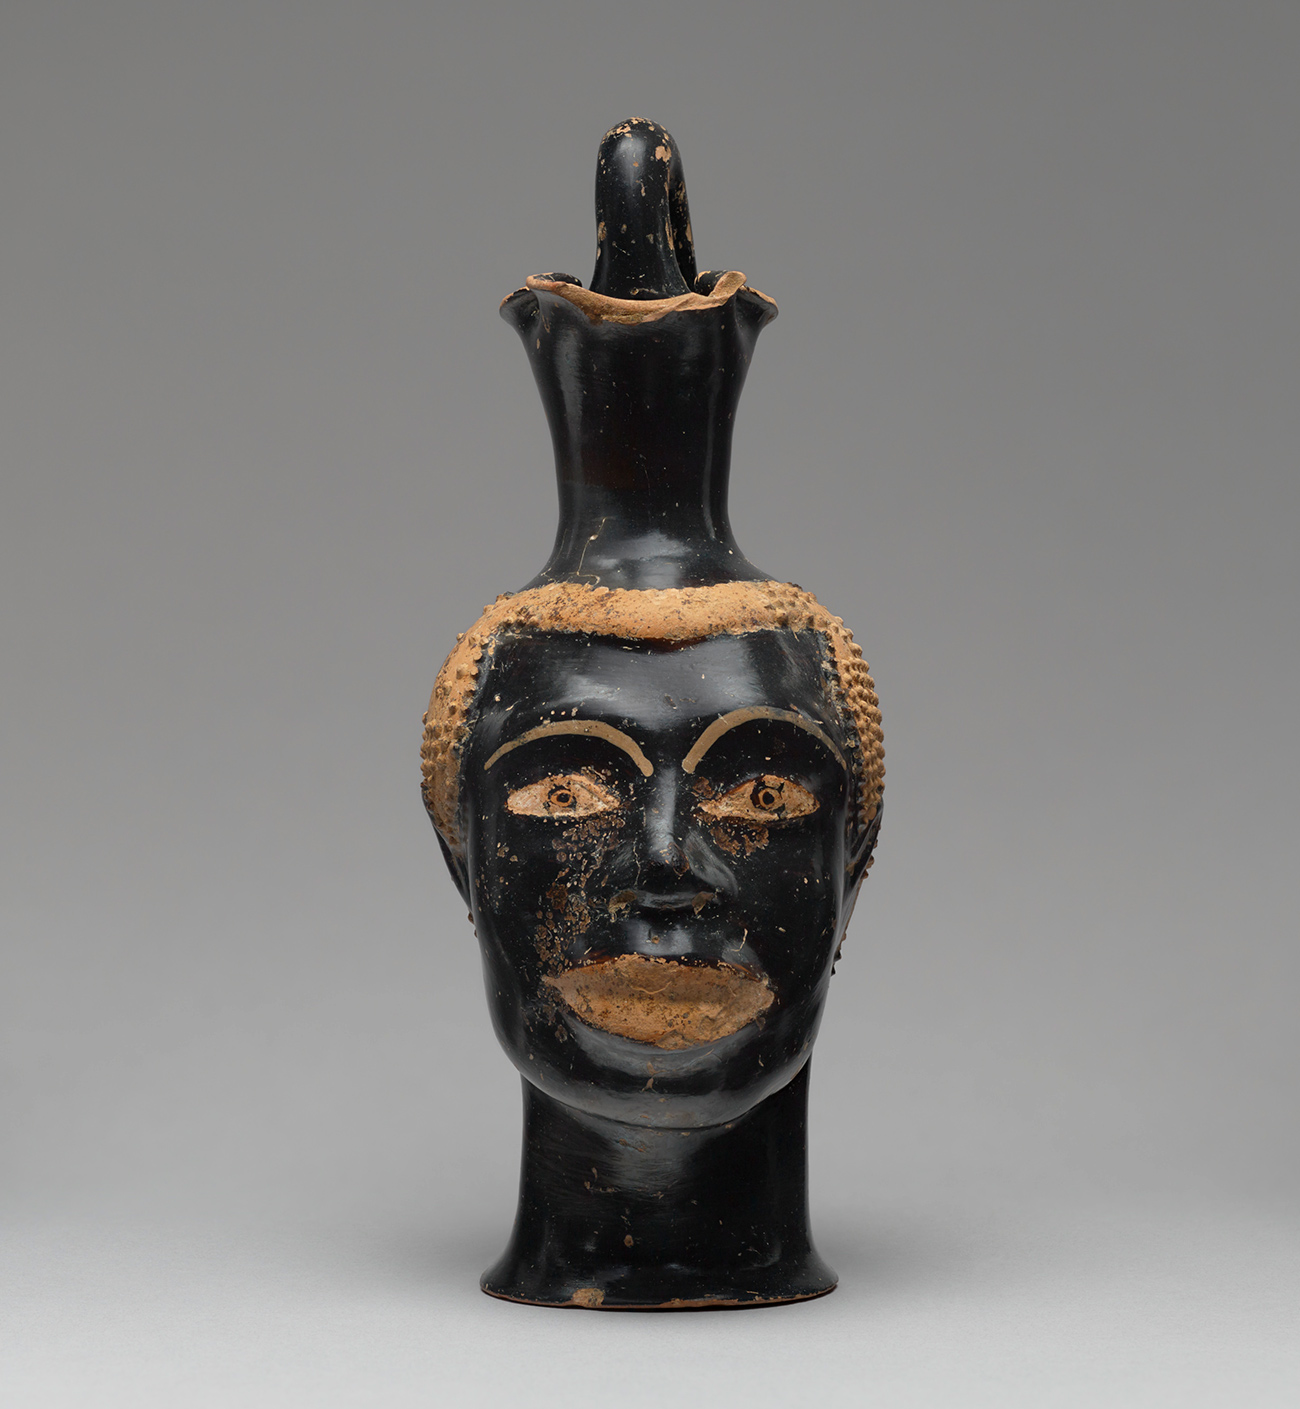 Front view of a black-painted ancient vase with large lips and clay-colored lips